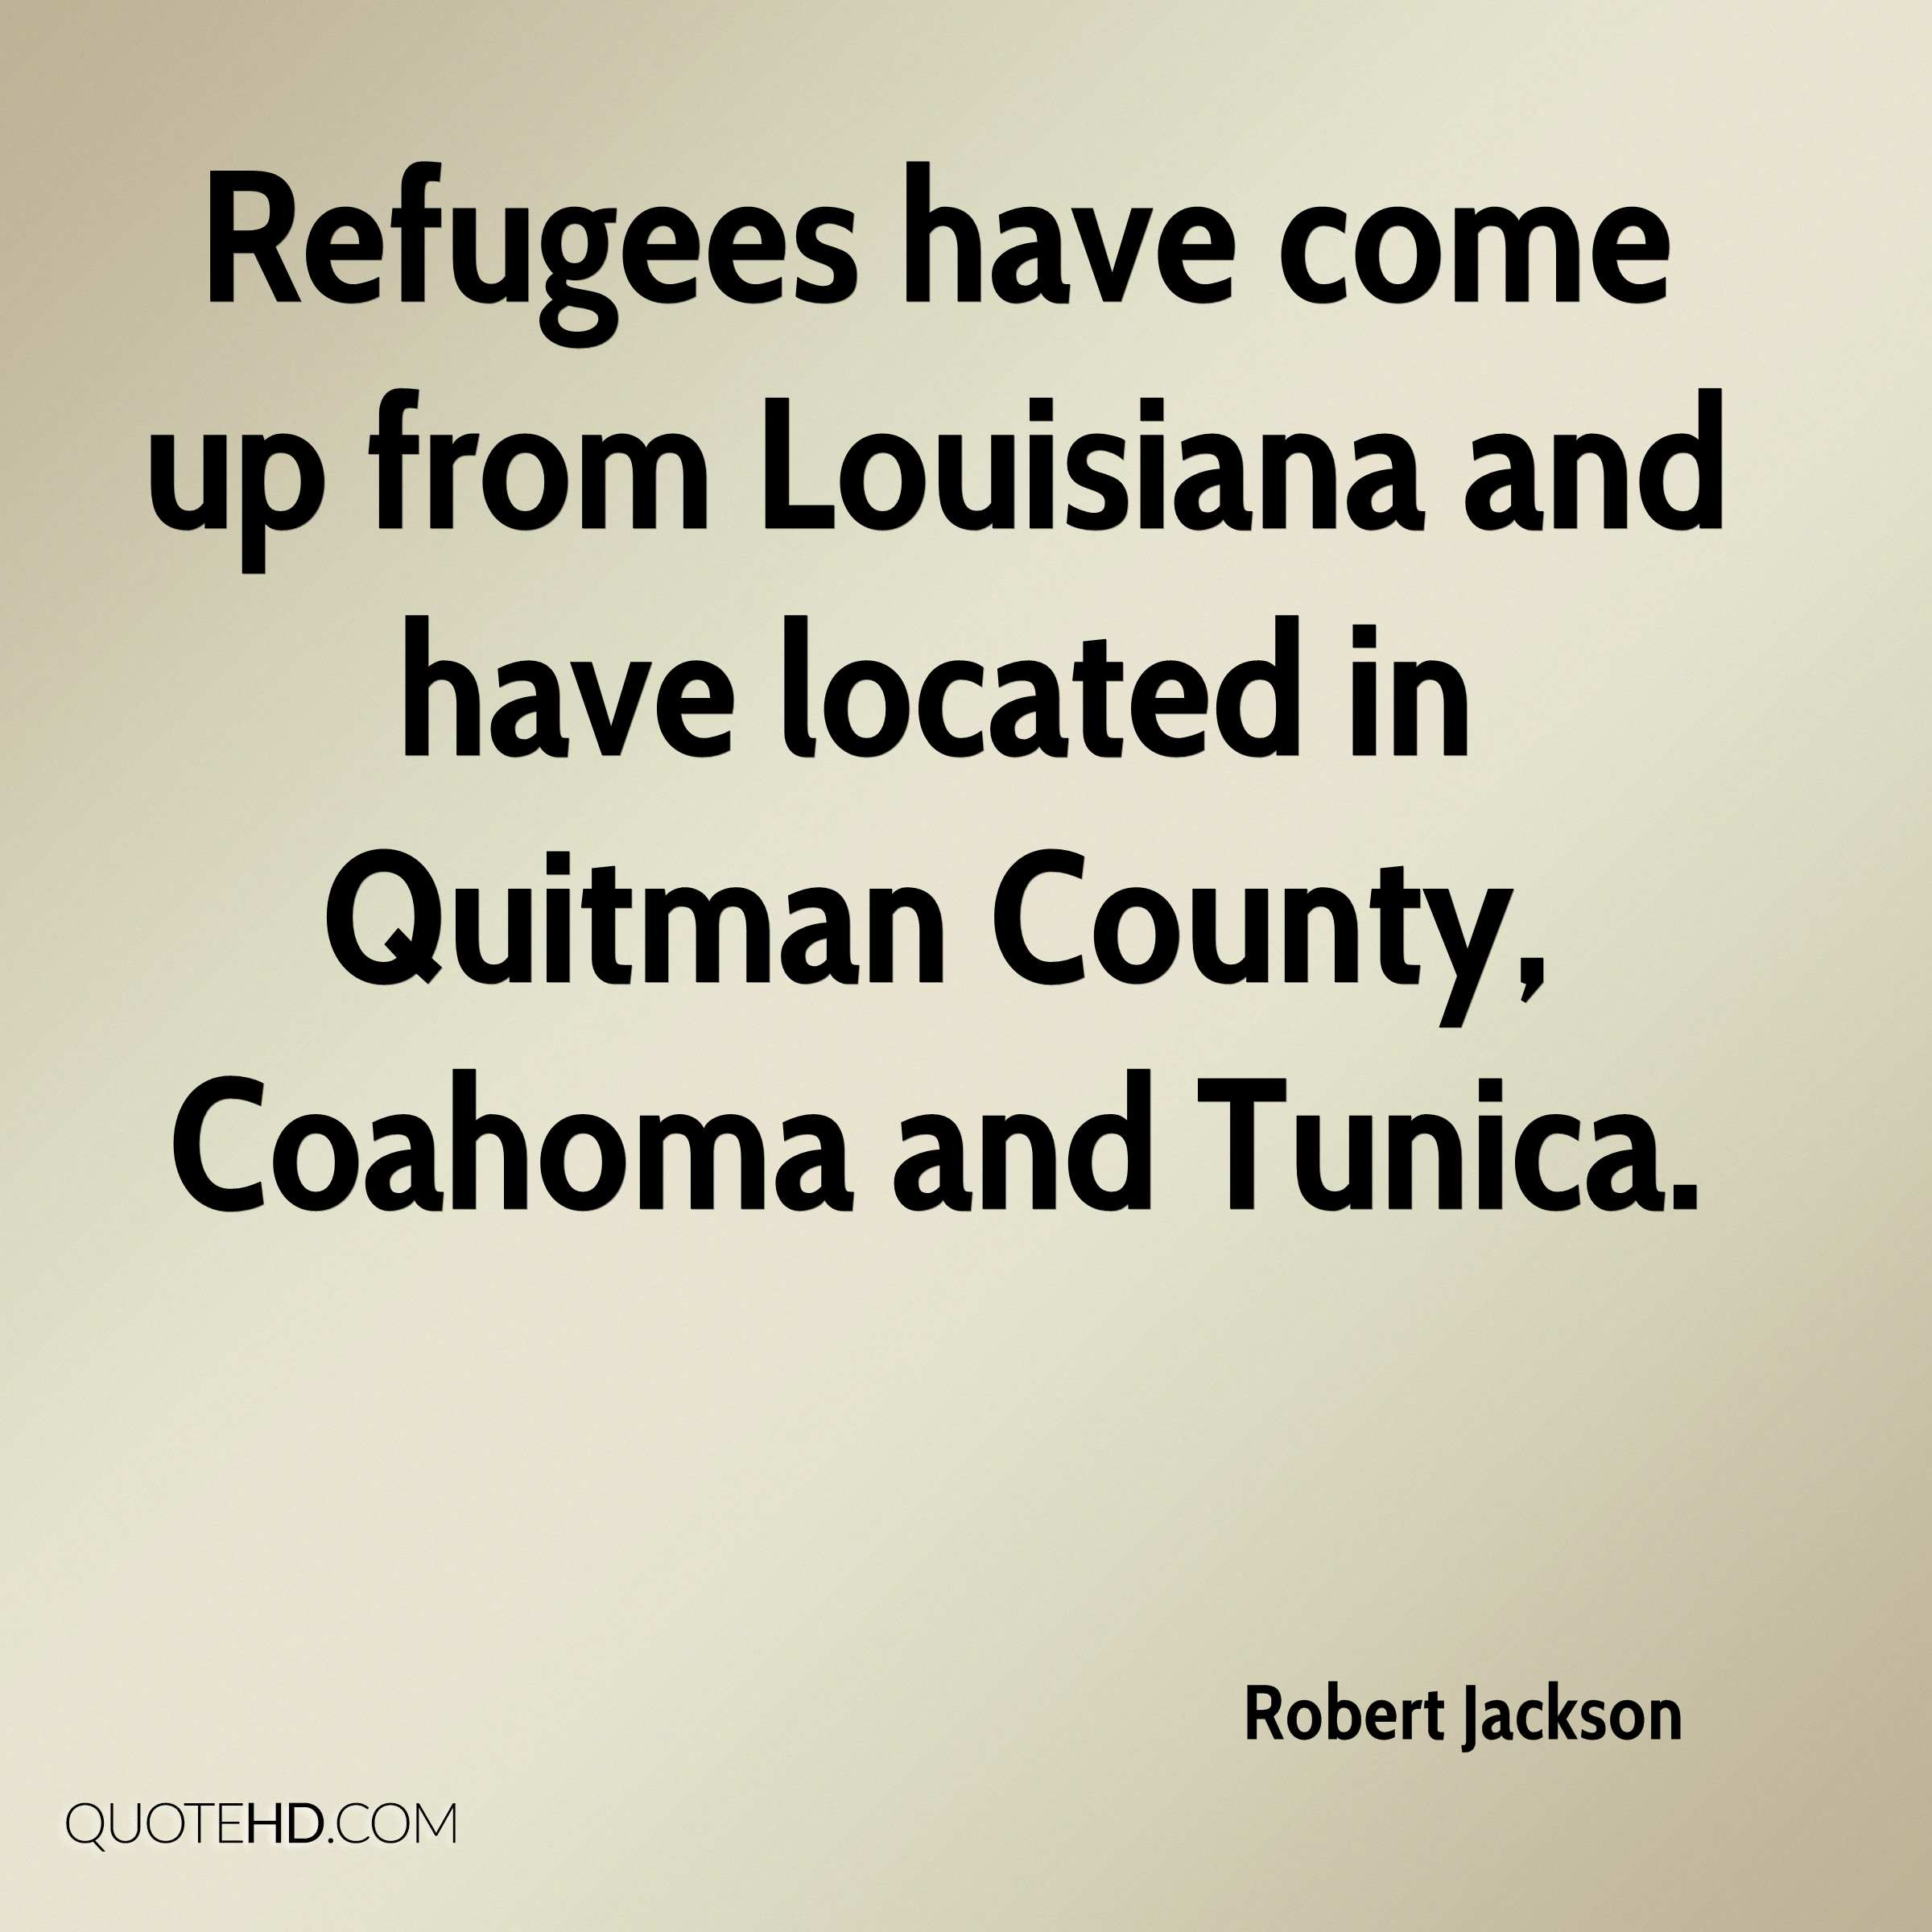 Refugees have come up from Louisiana and have located in Quitman County, Coahoma and Tunica.